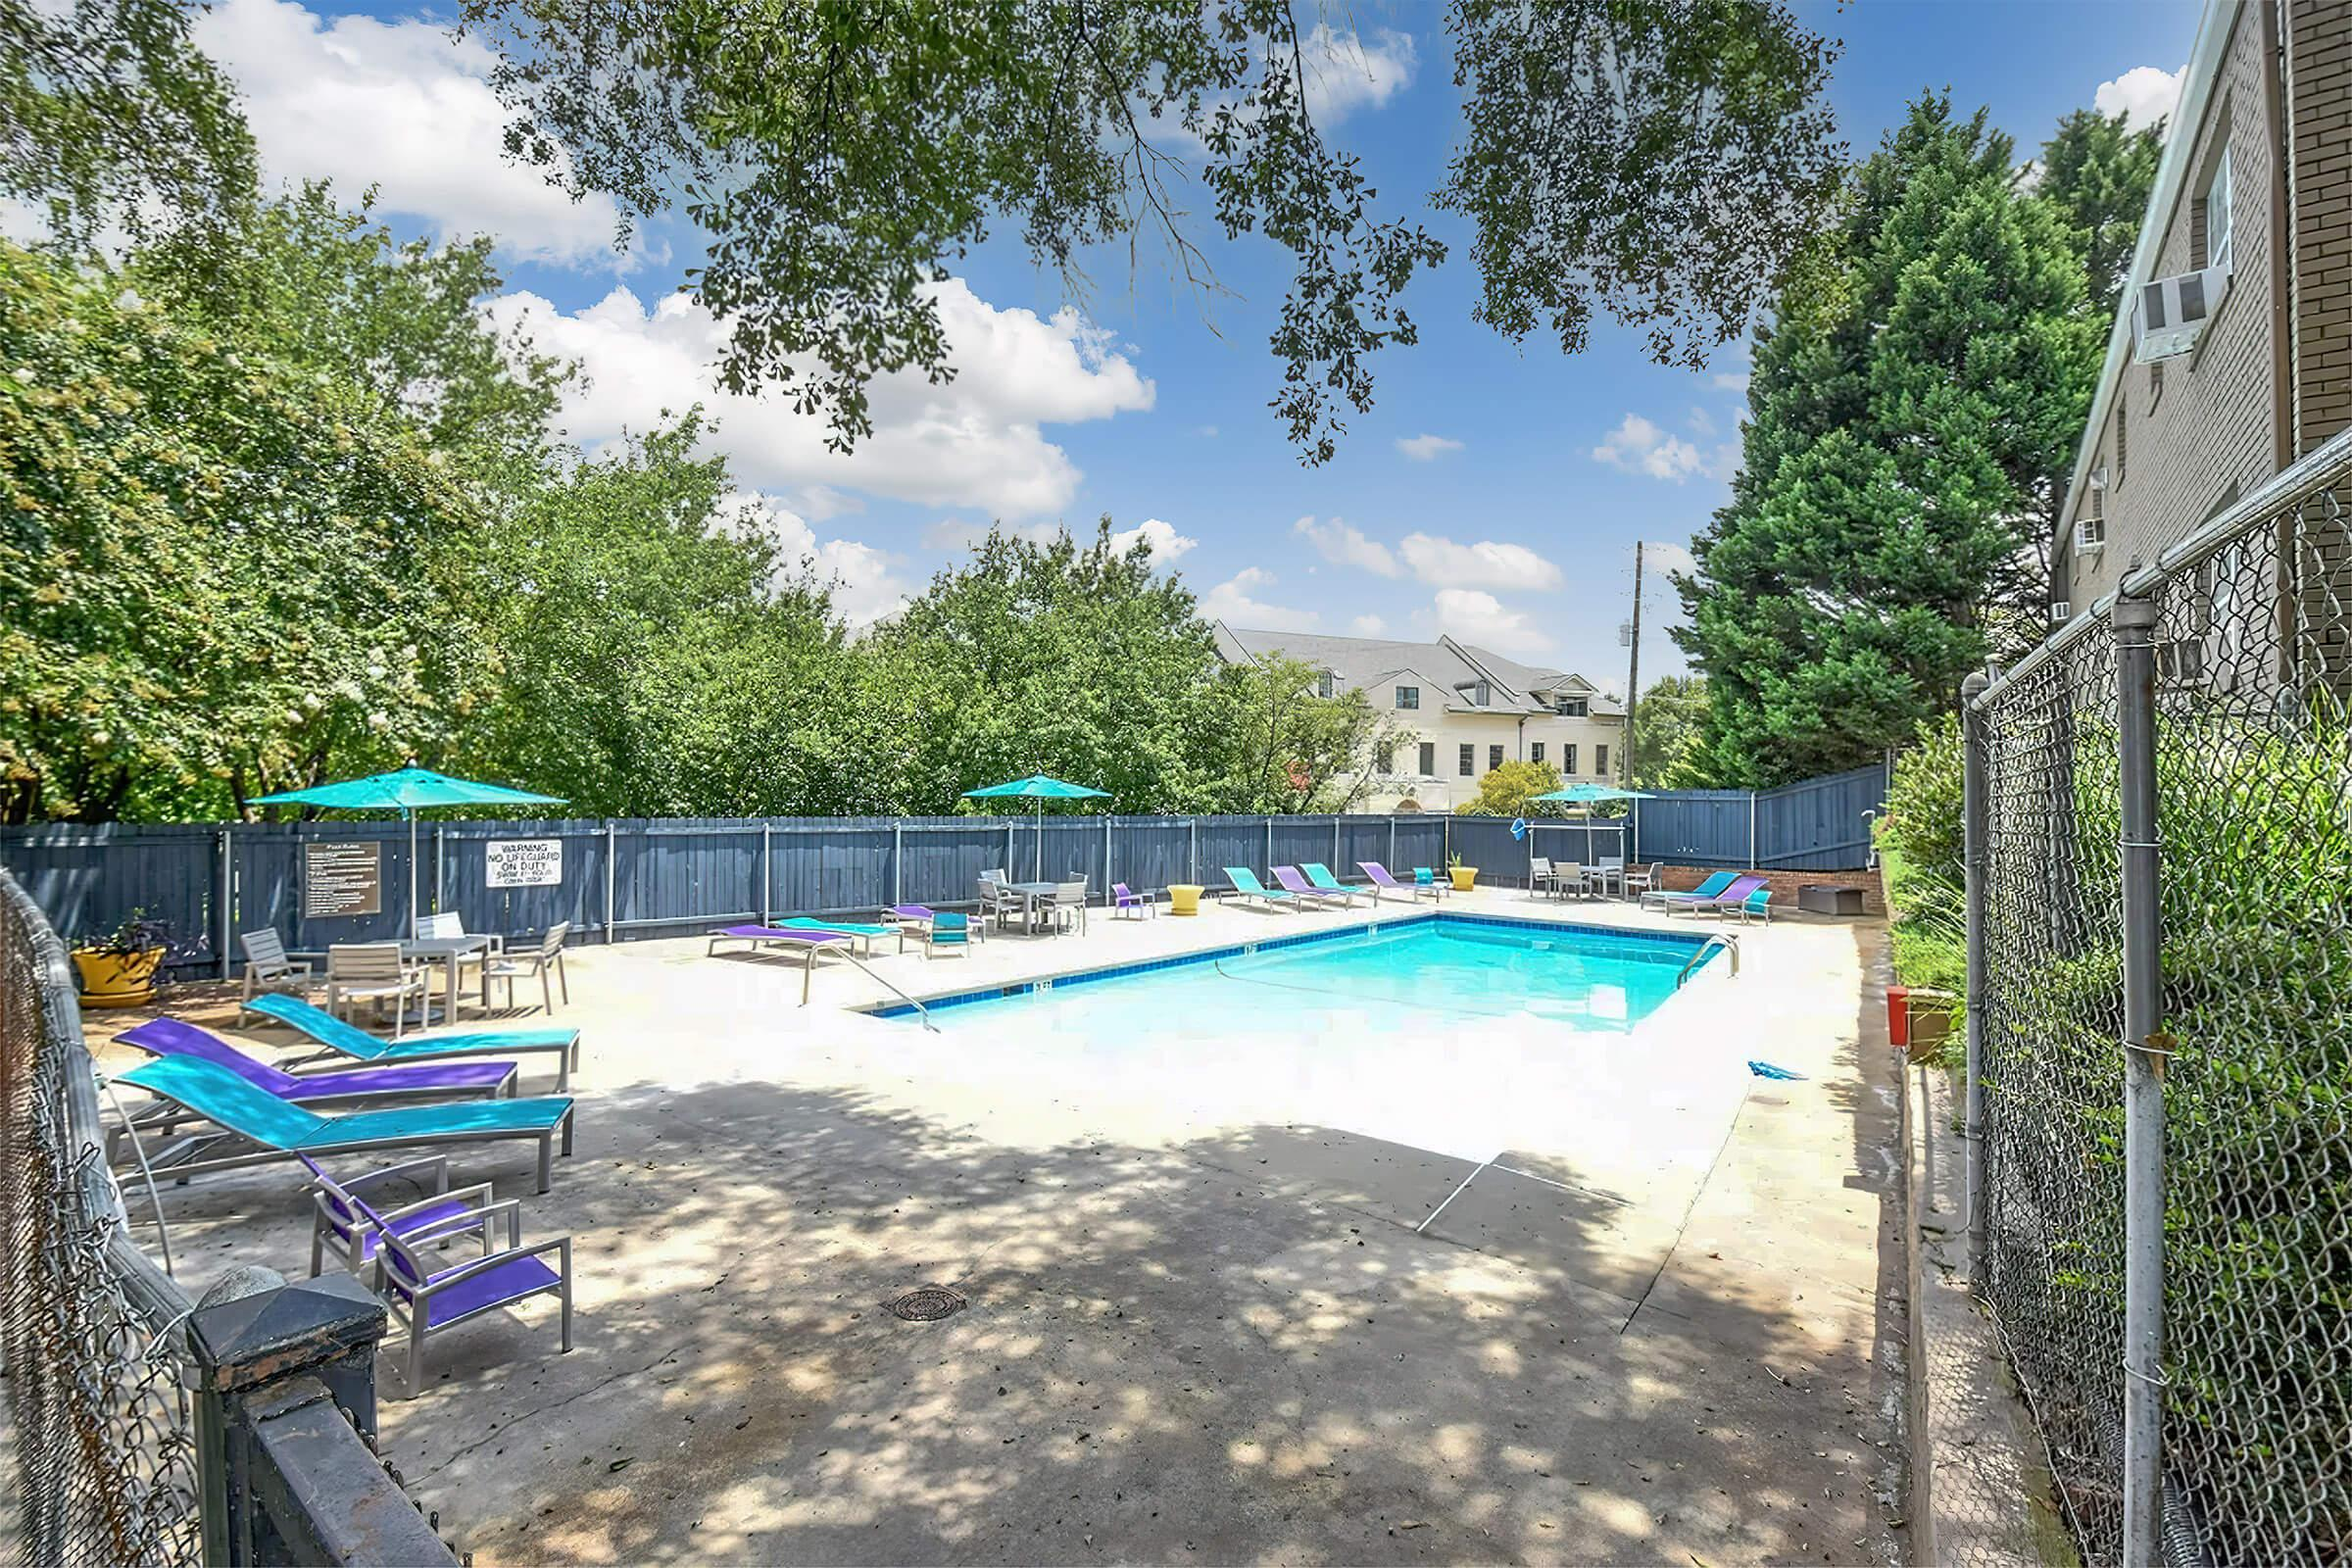 ENJOY THE SHIMMERING SWIMMING POOL AT THE PARK AT PEACHTREE HILLS